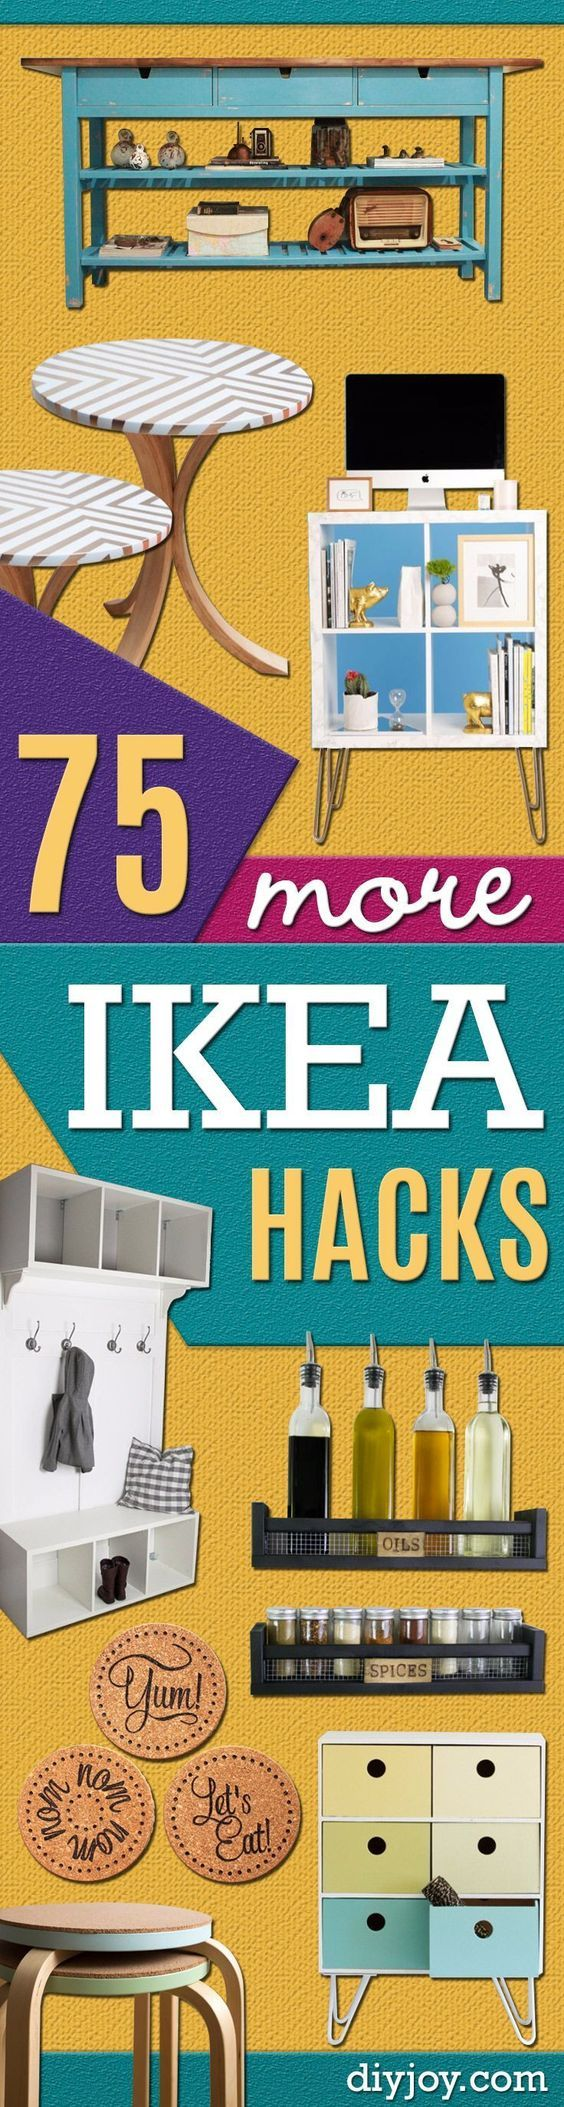 Best IKEA Hacks and DIY Hack Ideas for Furniture Projects and Home Decor from IKEA -Creative IKEA Hack Tutorials for DIY Platform Bed, Desk, Vanity, Dresser, Coffee Table, Storage and Kitchen, Bedroom and Bathroom Decor http://diyjoy.com/best-ikea-hacks